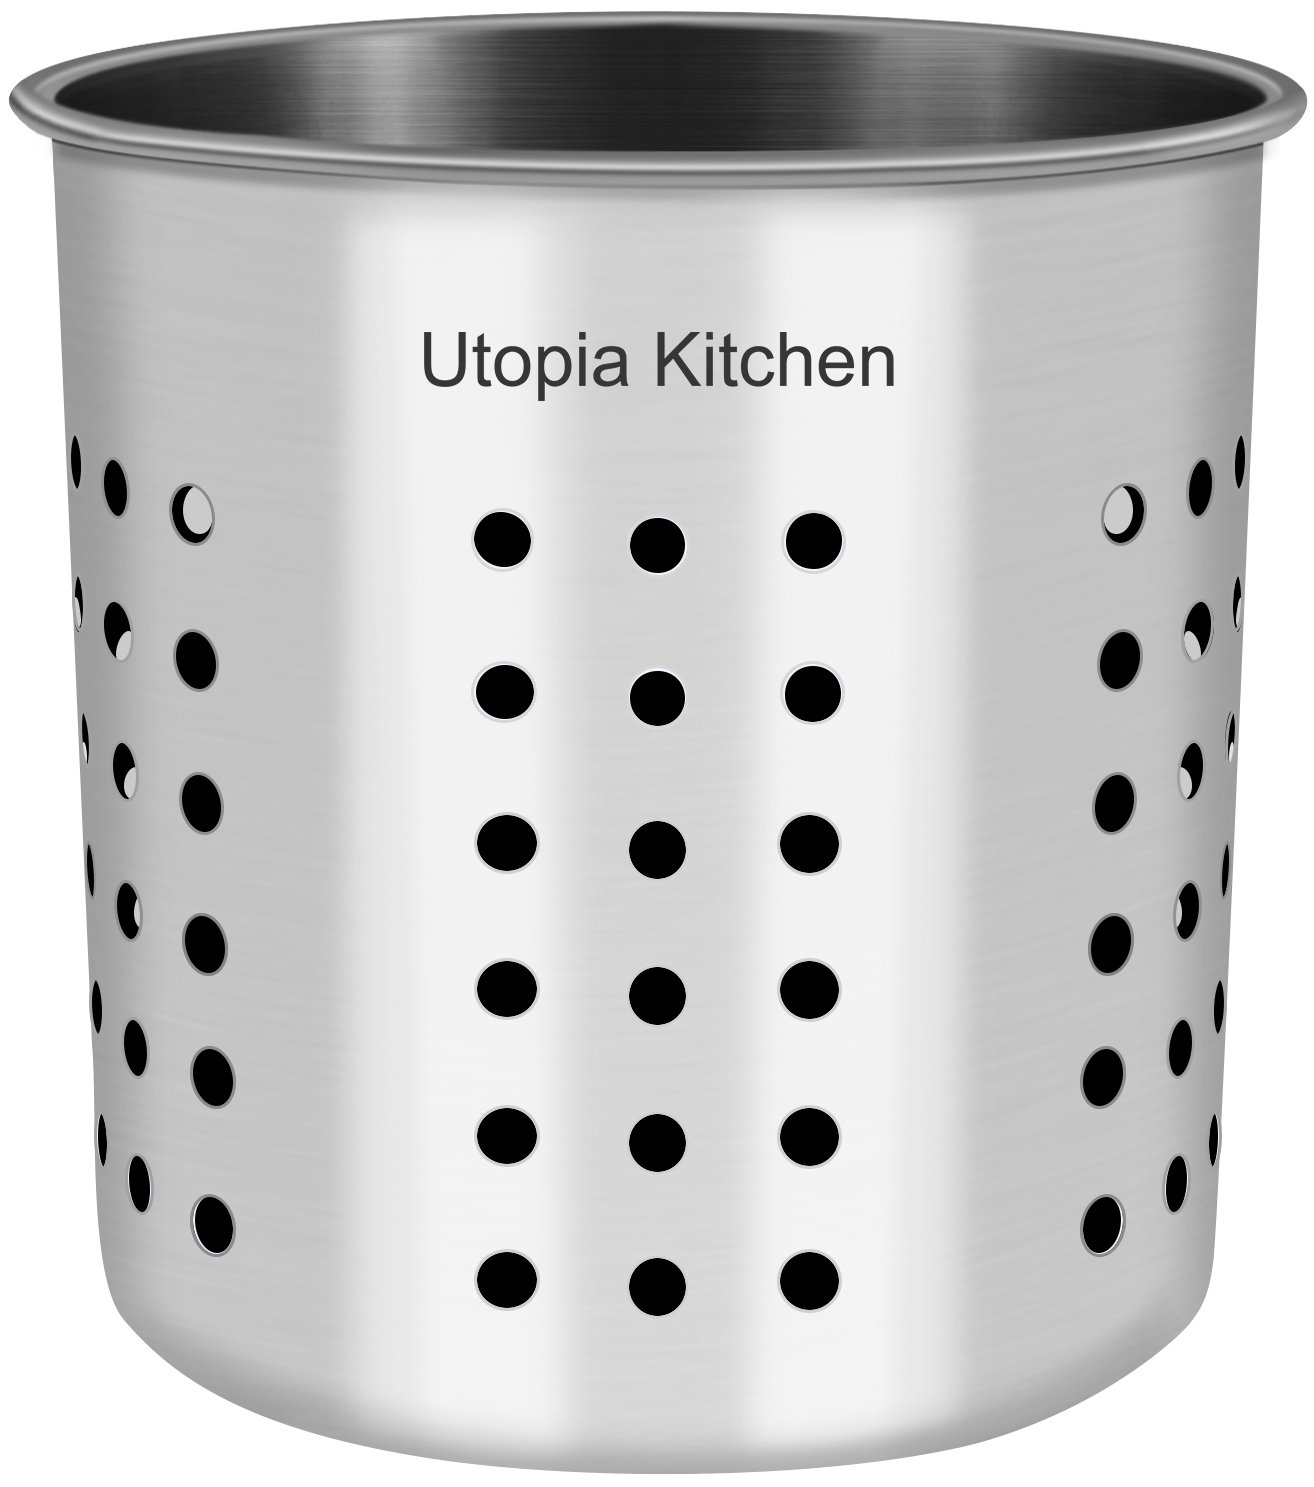 Kitchen Utensil Holder - Utensil Container - Utensil Cock - Flatware Caddy - Brushed Stainless Steel Cookware Cutlery Utensil Holder with Drain Holes - By Utopia Kitchen UK0119